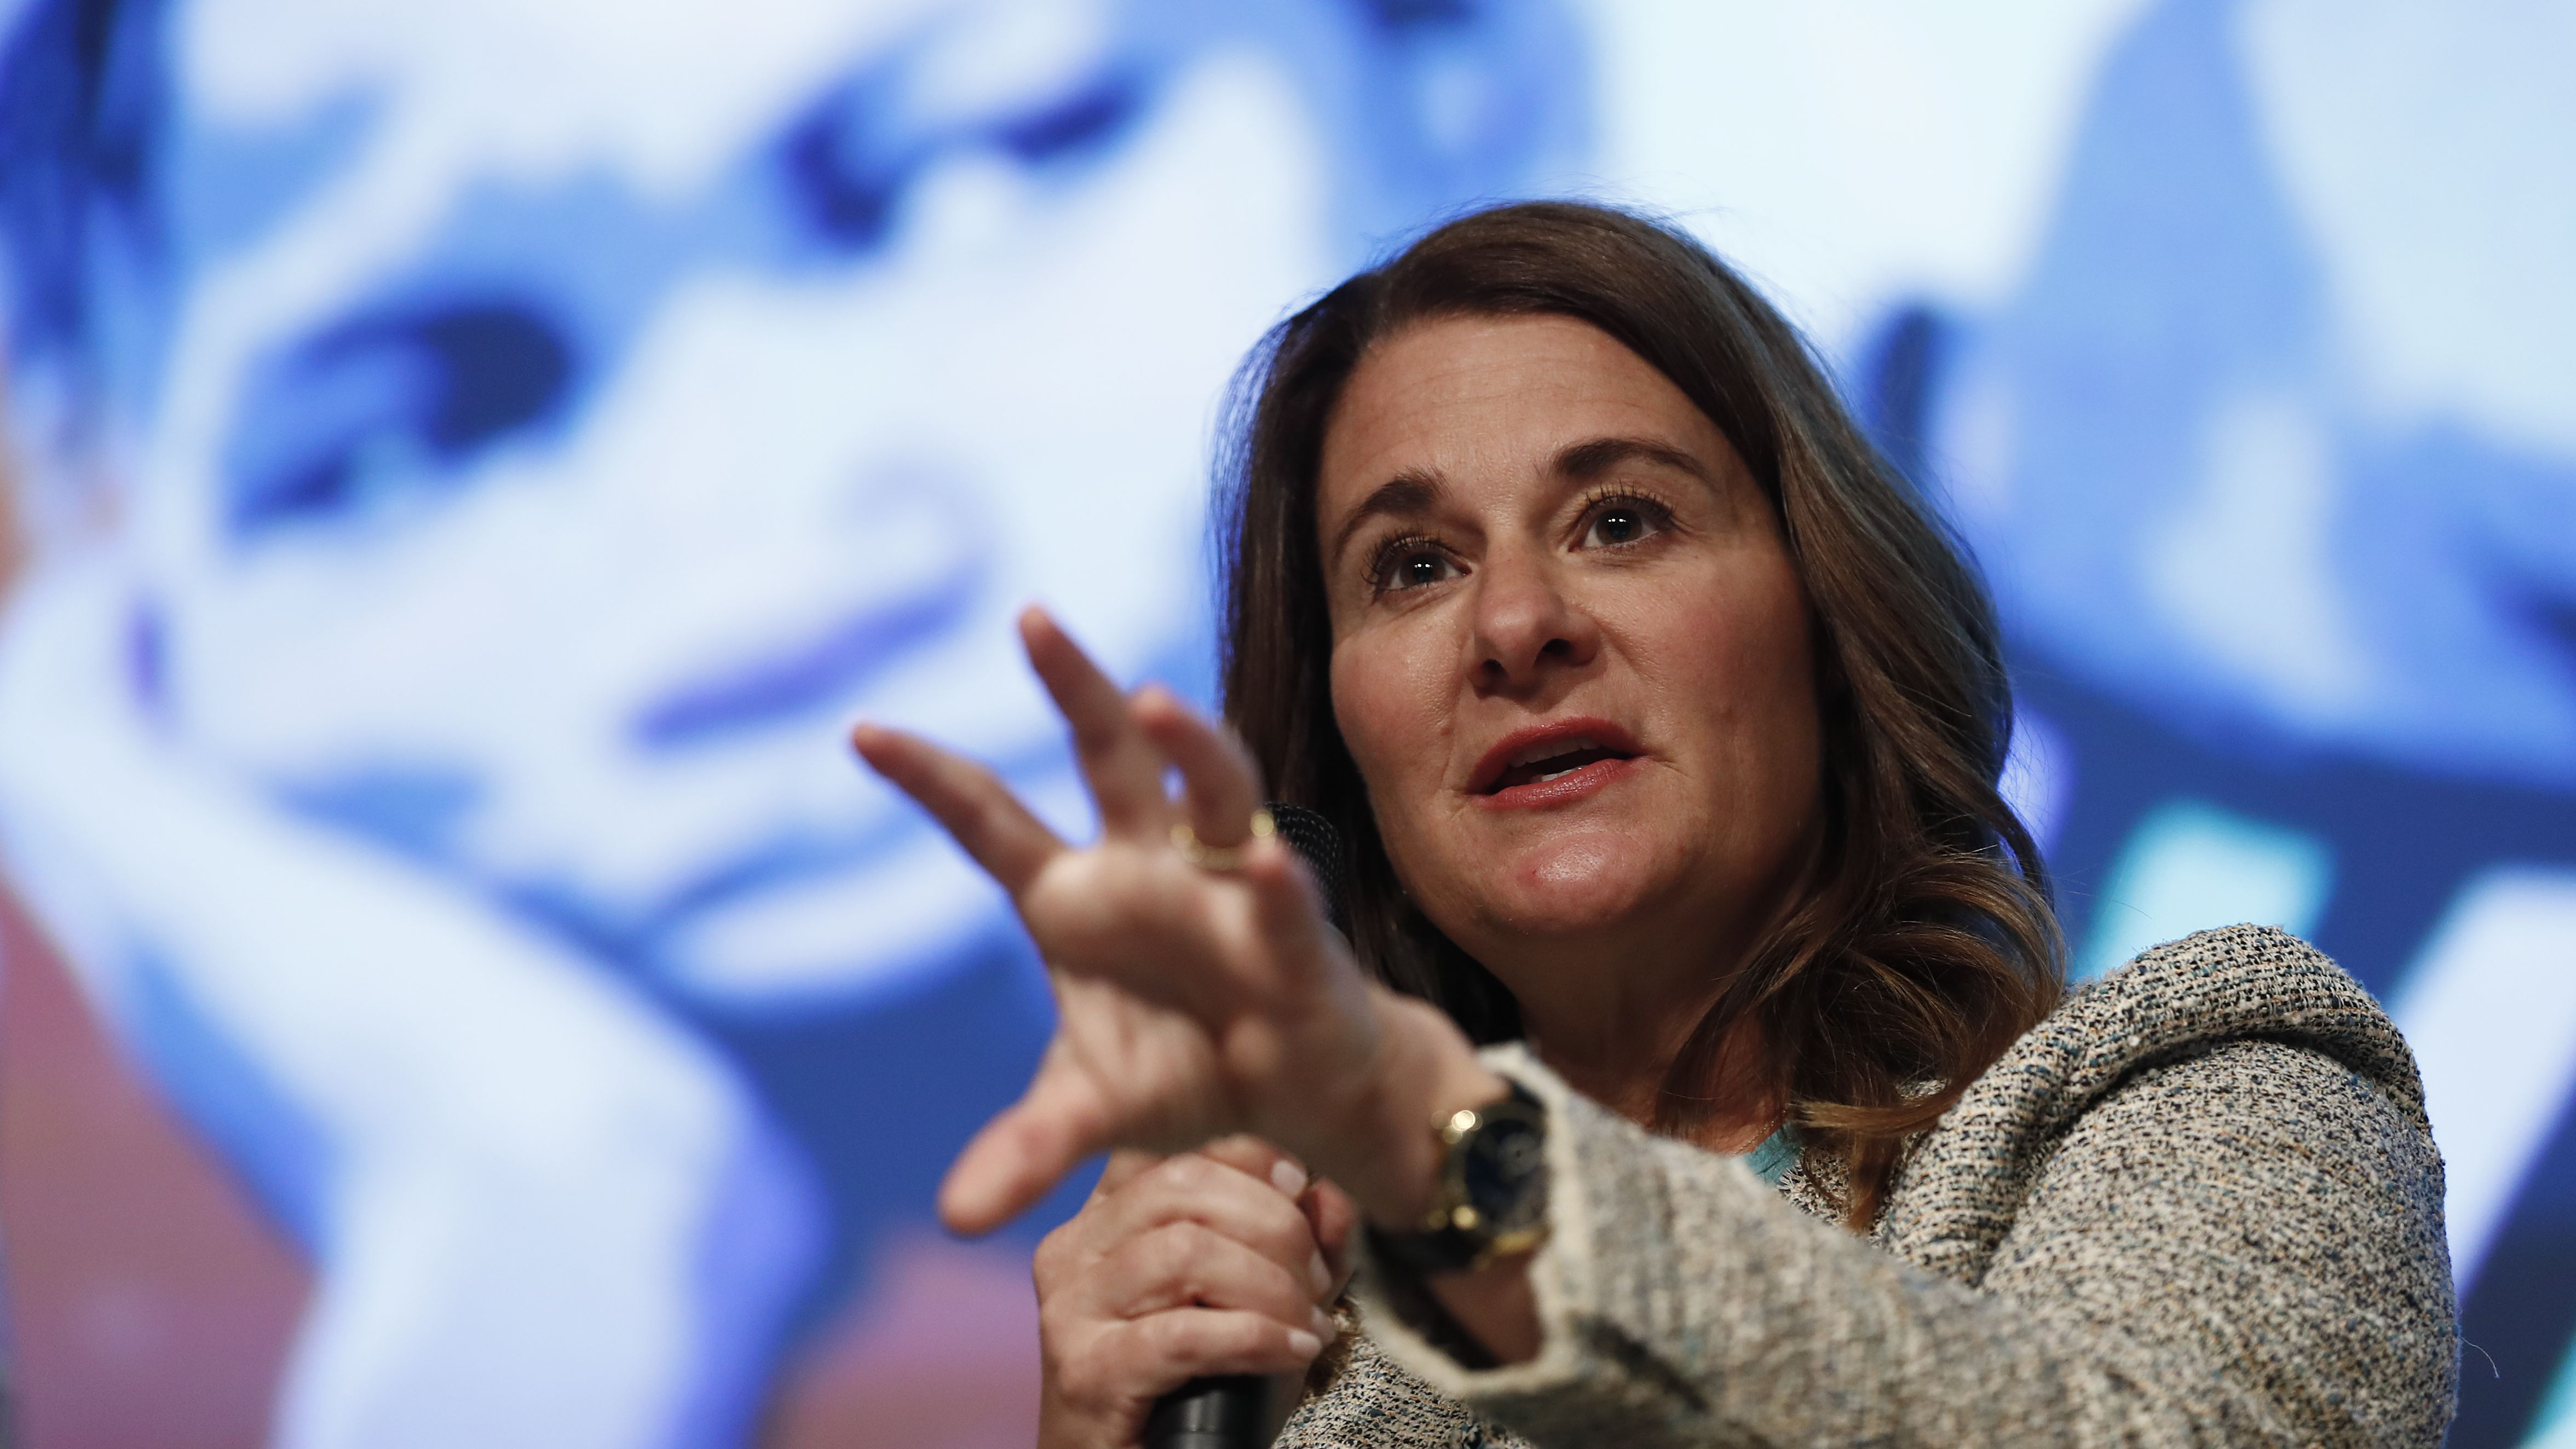 """Melinda Gates speaks during the """"Generation Now Investing in Adolescents Today to Shape the Works of Tomorrow"""" panel at the 2017 World Bank Group Spring Meetings in Washington, Thursday, April 20, 2017. The leaders of the International Monetary Fund and the World Bank begin their spring meetings with the mission of strengthening a gradually improving global economy while facing resistance to free trade and political unrest in some countries. (AP Photo/Carolyn Kaster)"""